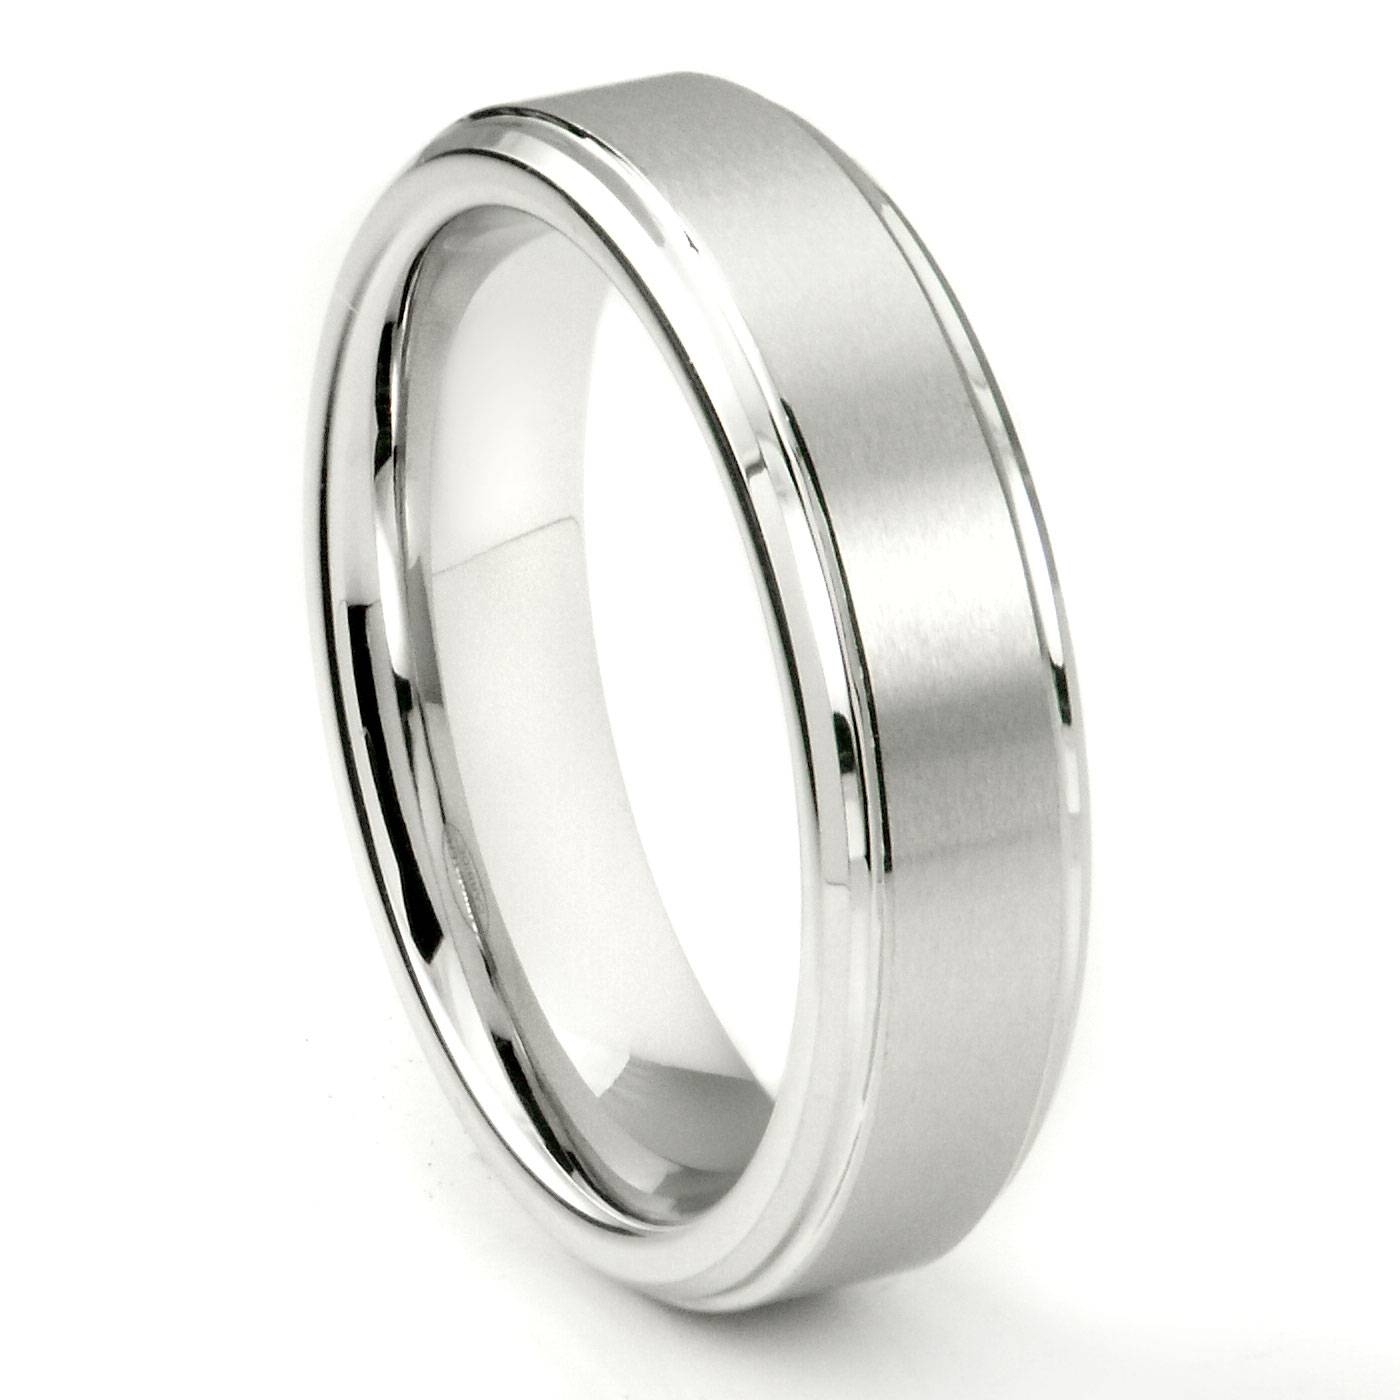 White Tungsten Carbide 6mm Wedding Band Ring W/ Raised Center Intended For Tungsten Wedding Bands (View 6 of 15)